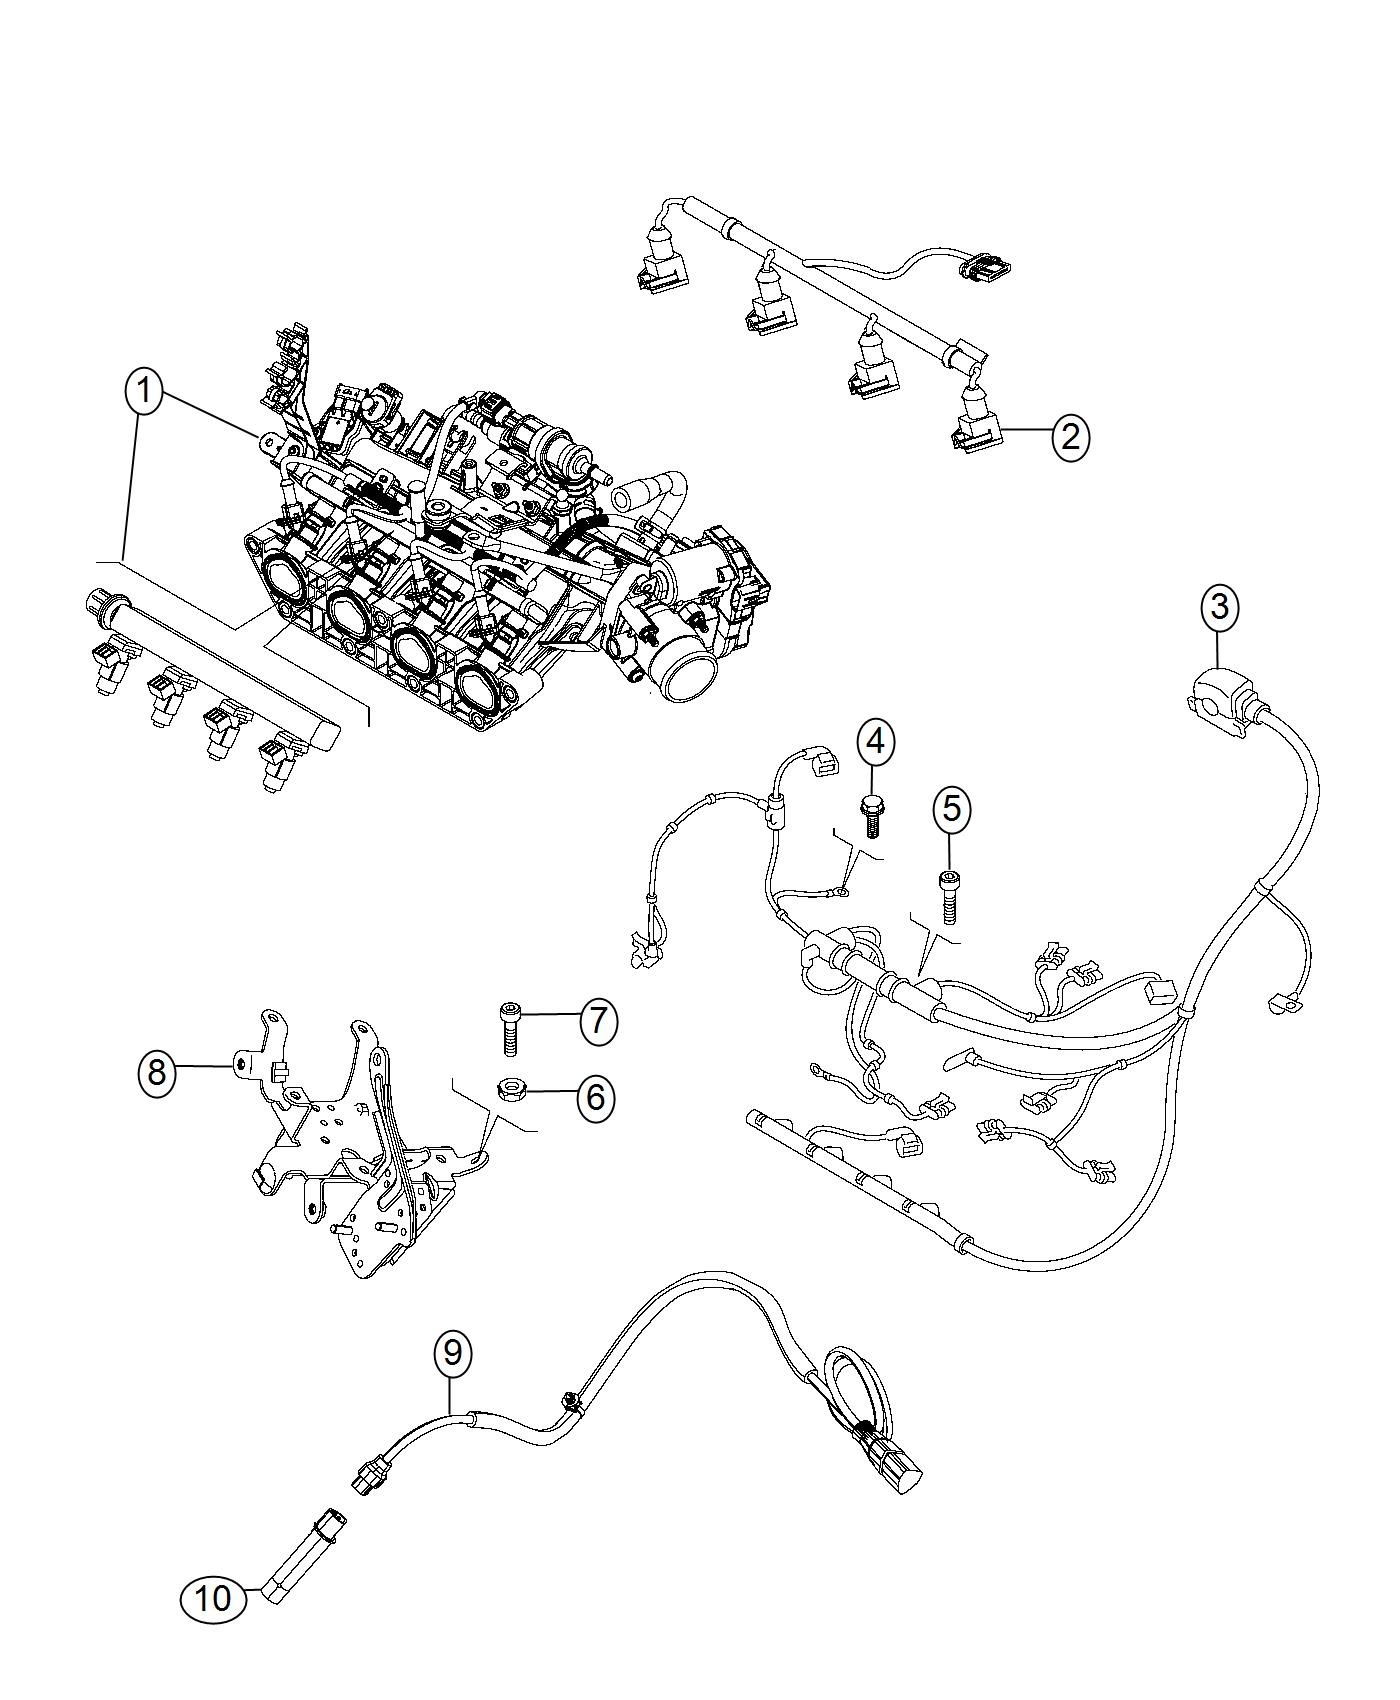 Diagram In Pictures Database Jeep Renegade Wiring